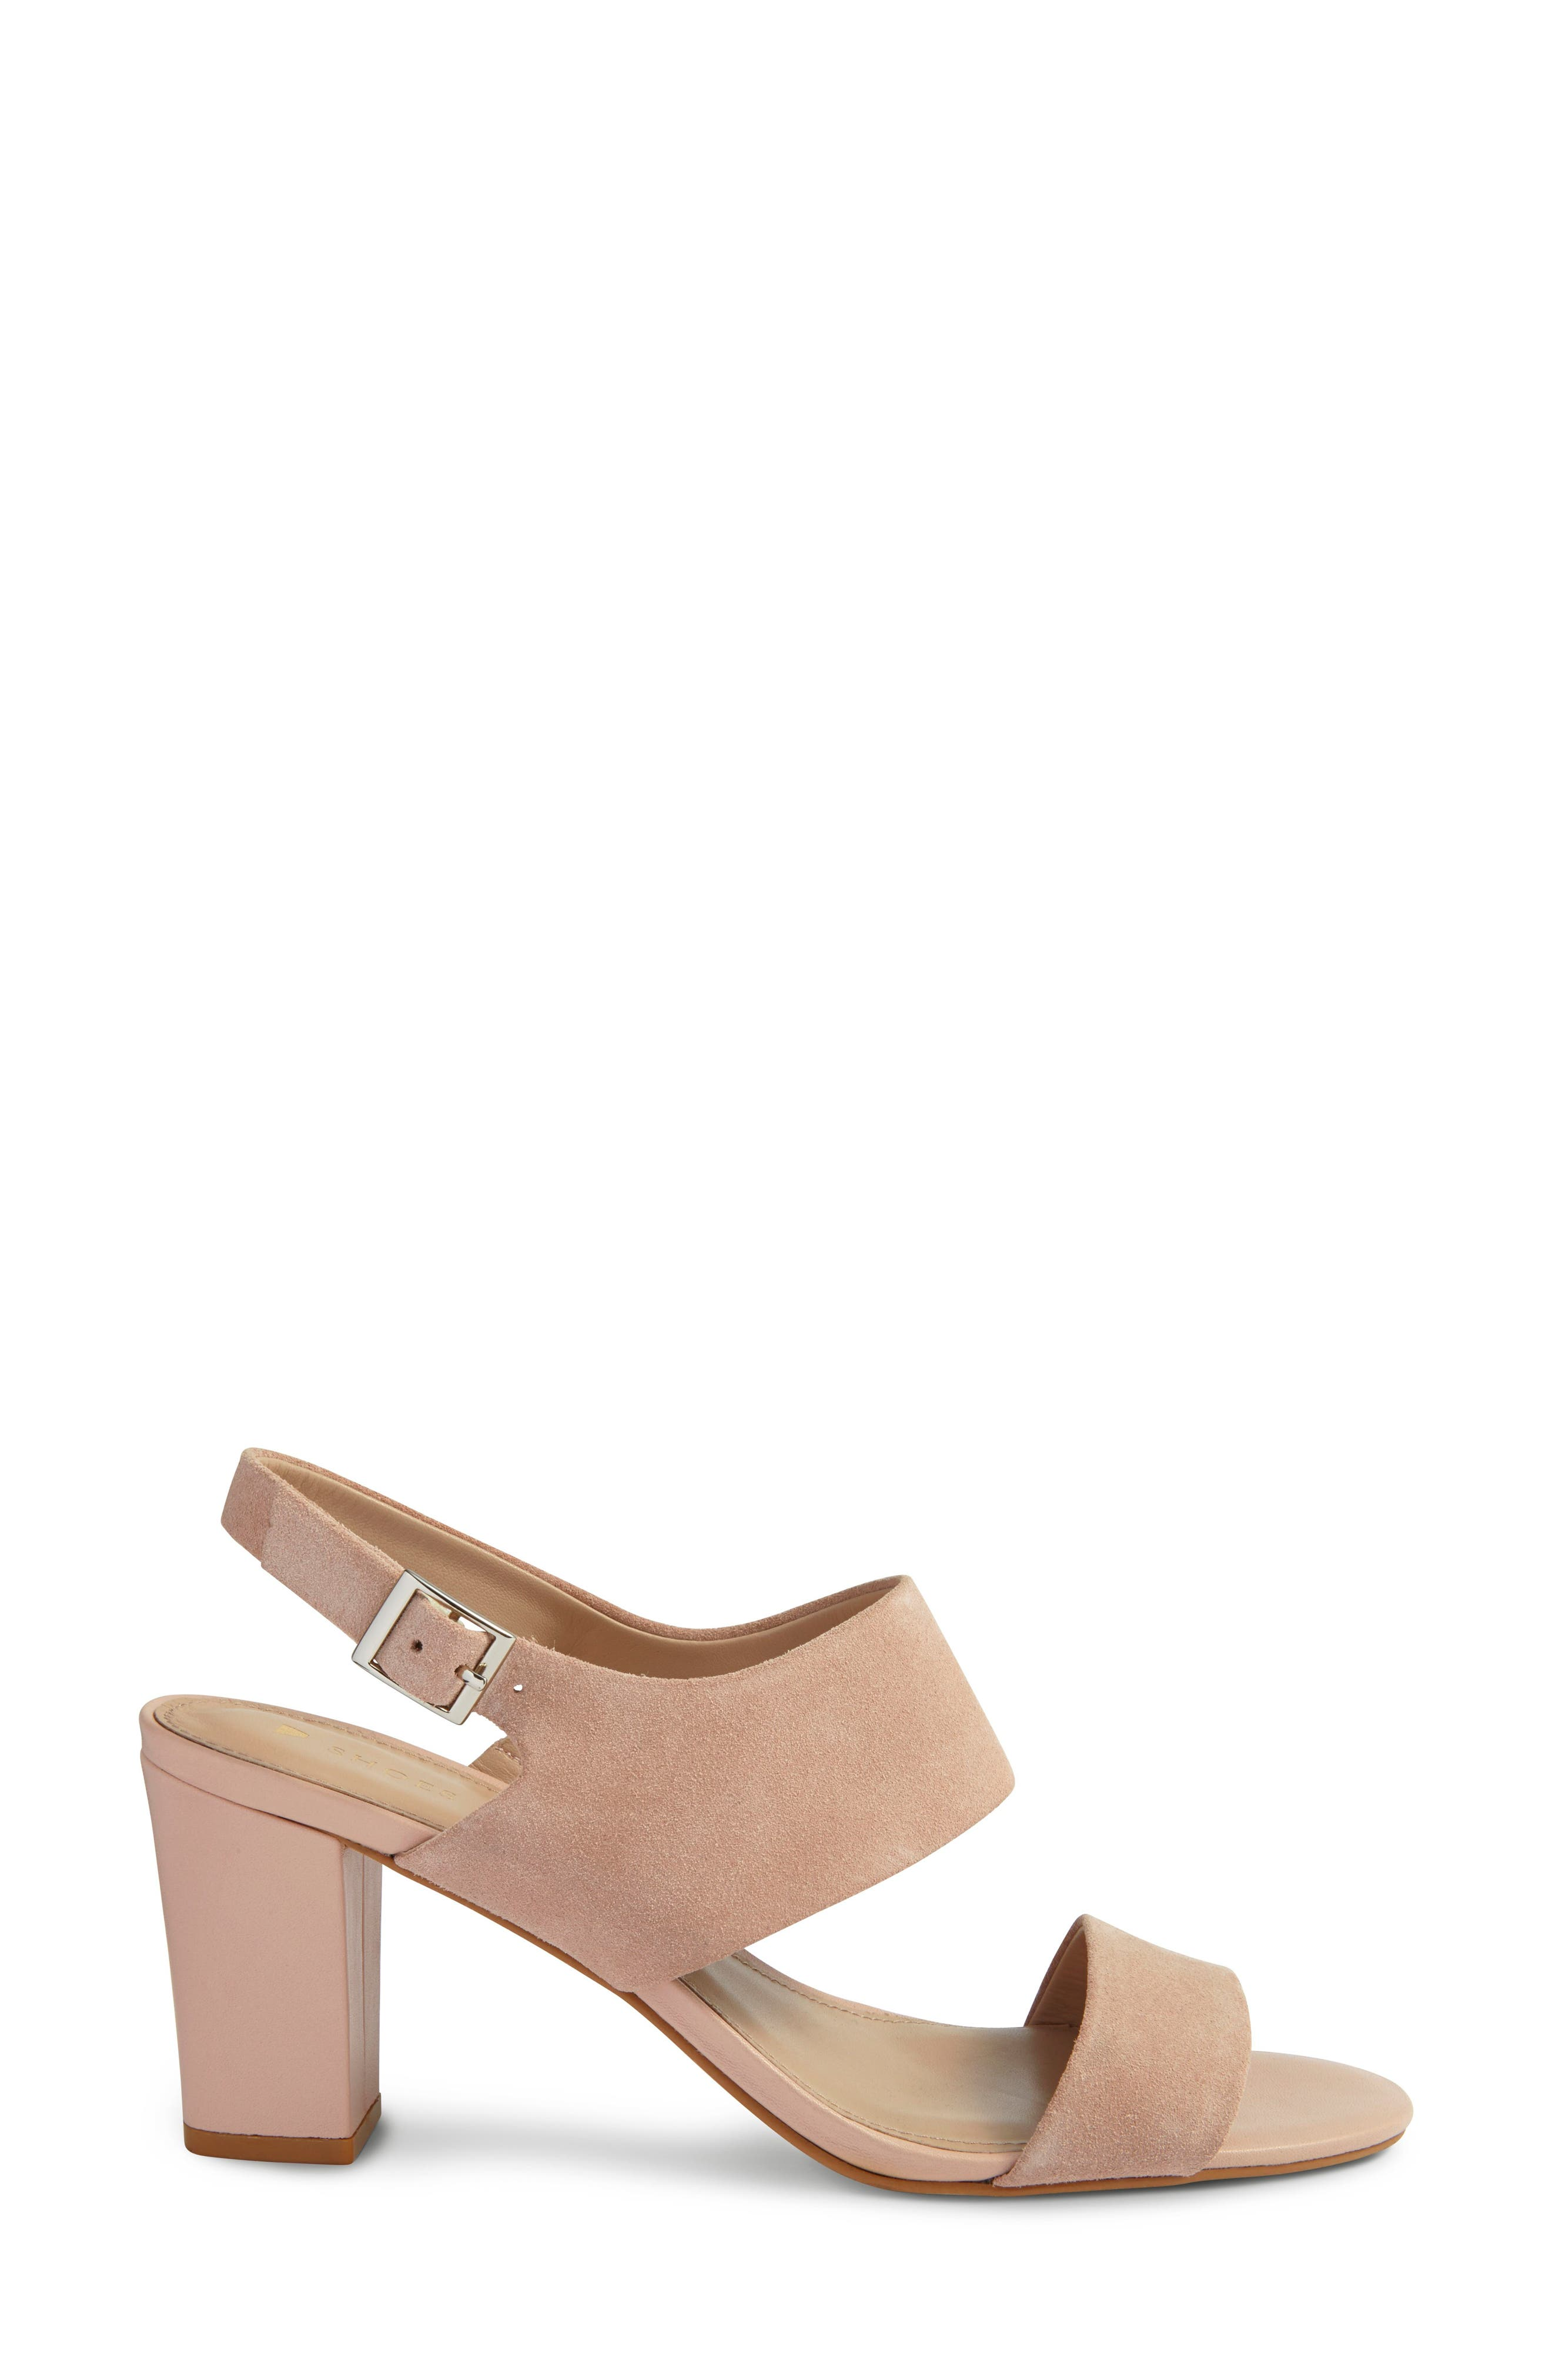 Strappy Sandal,                             Alternate thumbnail 3, color,                             Blush Nude Suede